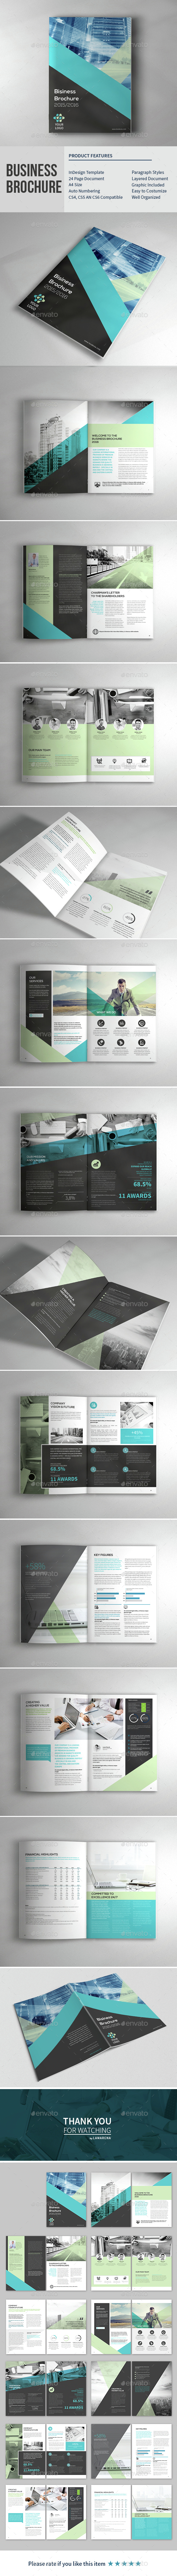 Business Corporate Brochure - Brochures Print Templates